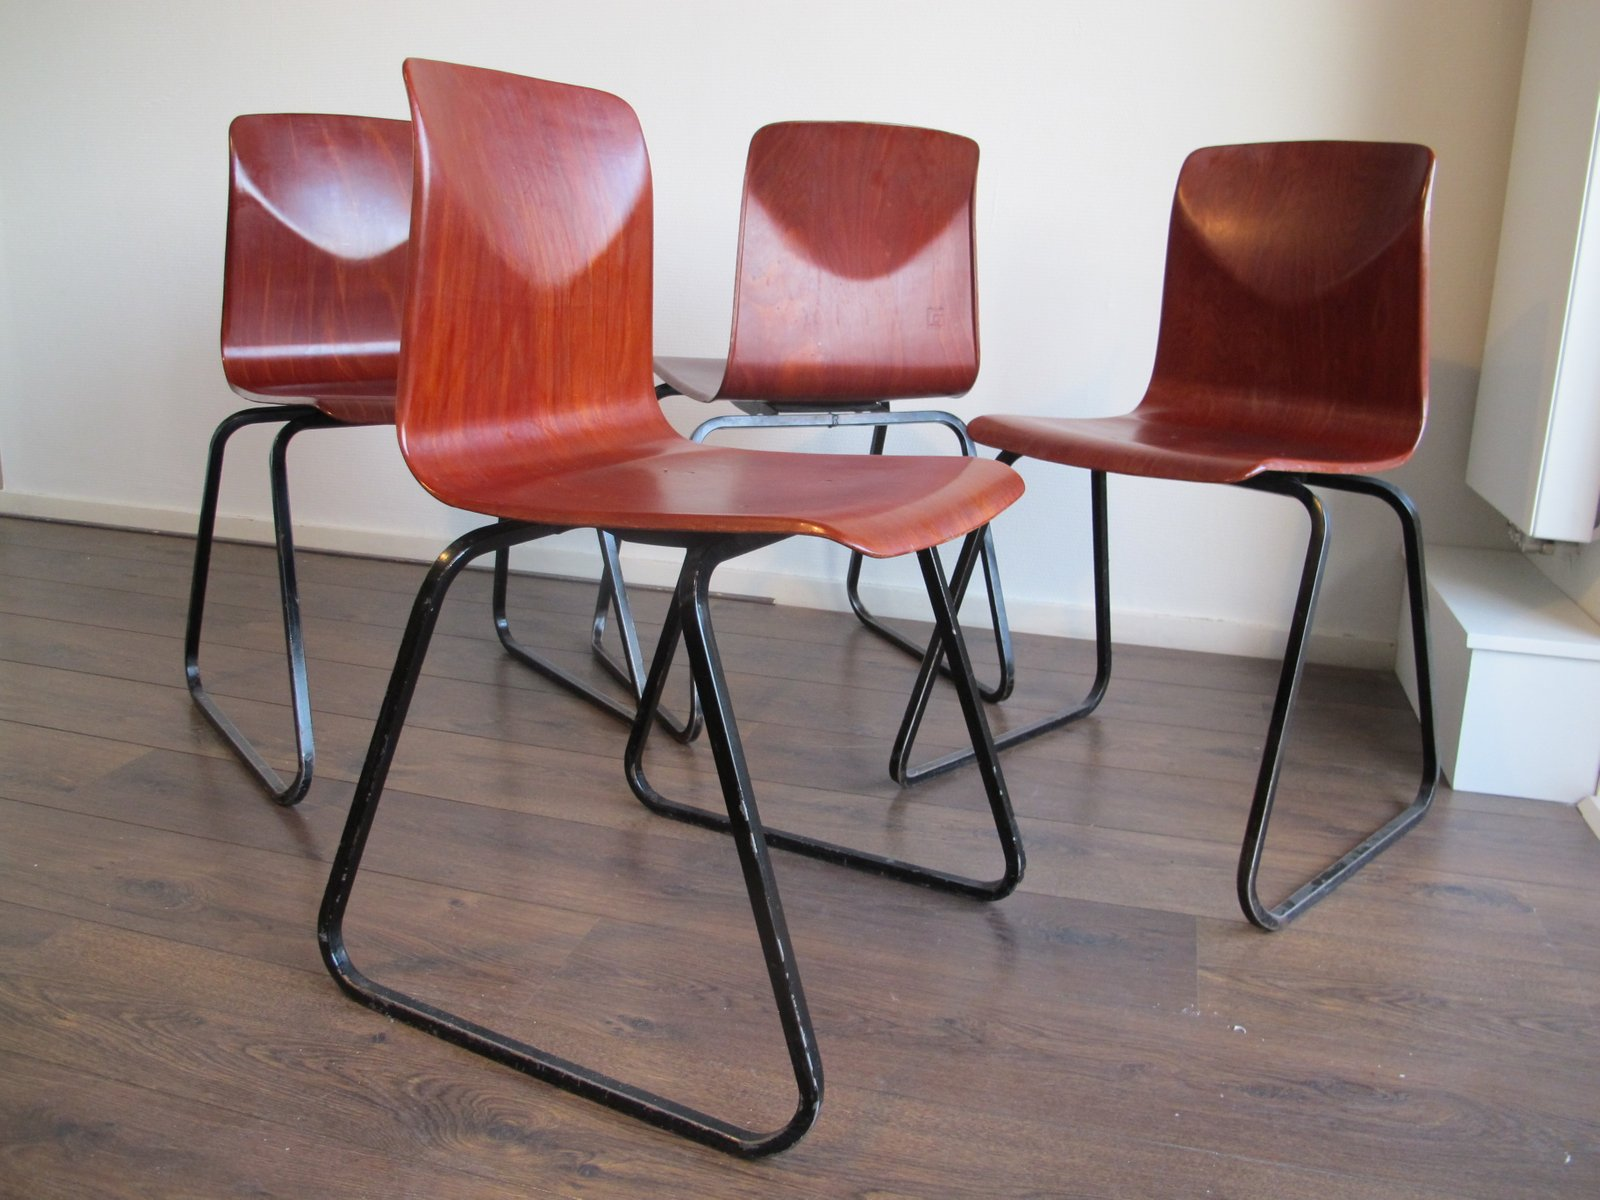 Vintage Industrial Chairs from Galvanitas Thur op Seat 1960s Set